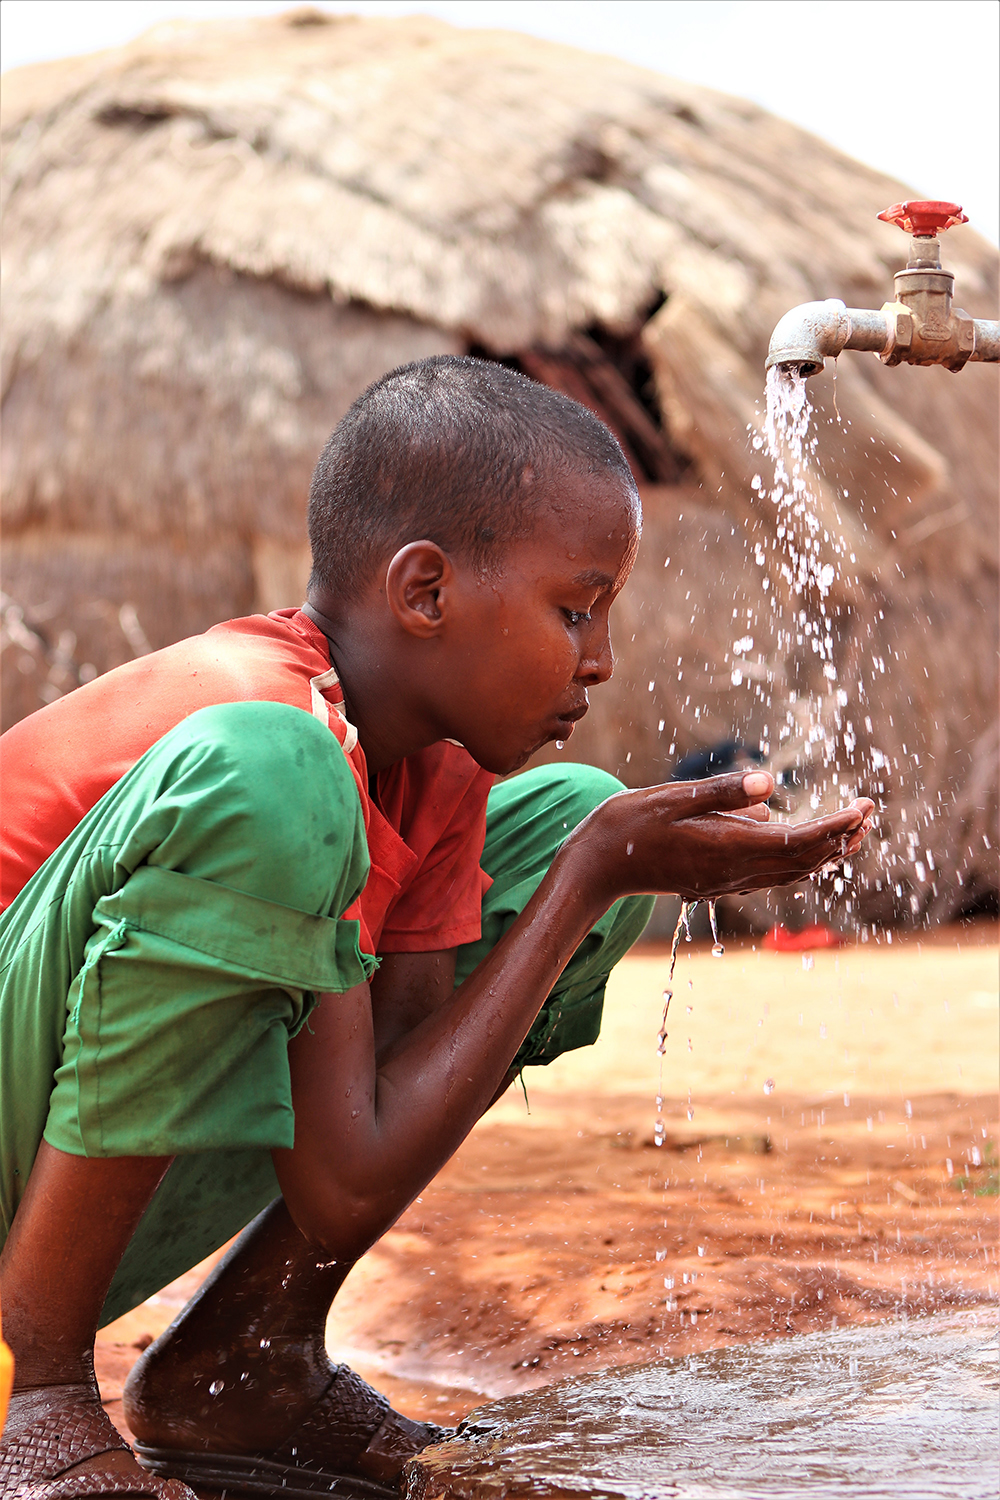 A boy drinking water with his hands.